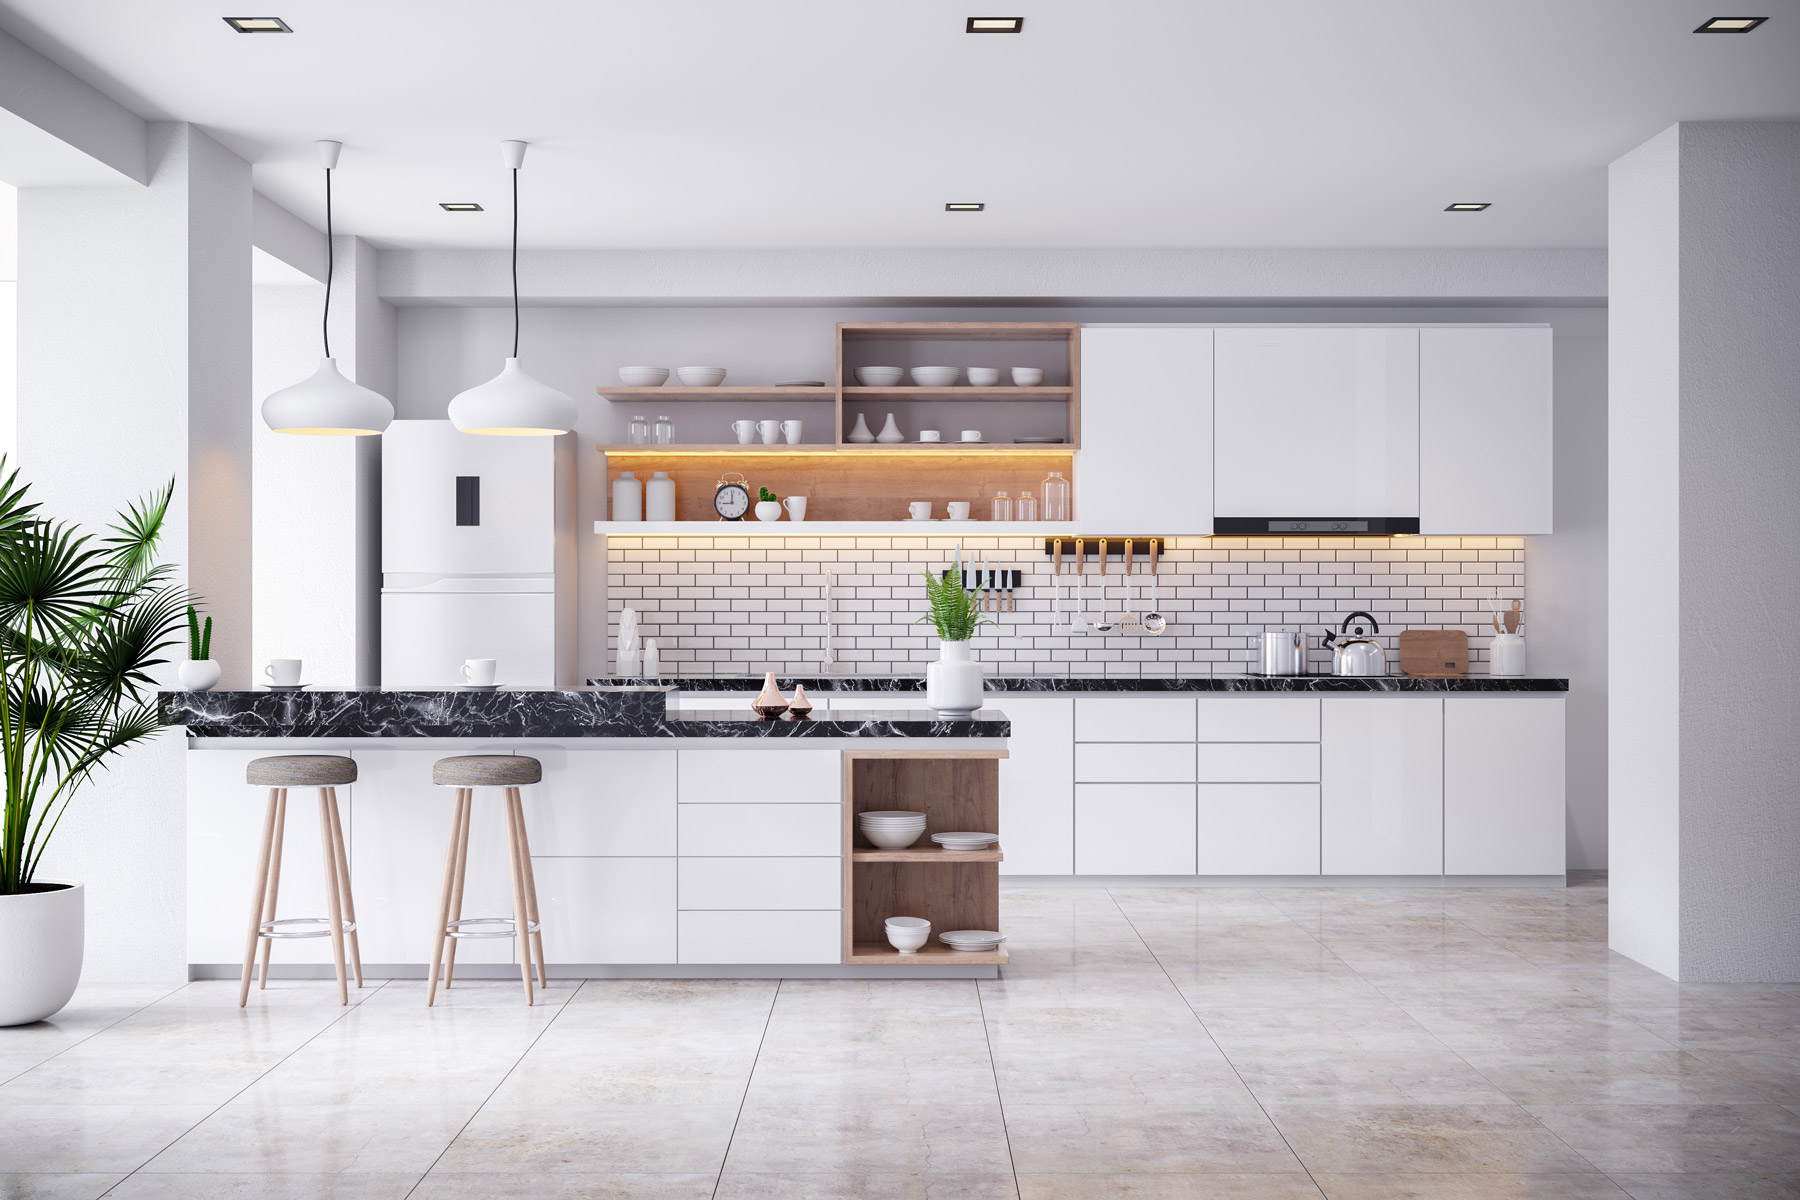 Kitchen remodel costs - how much to spend on kitchen renovation